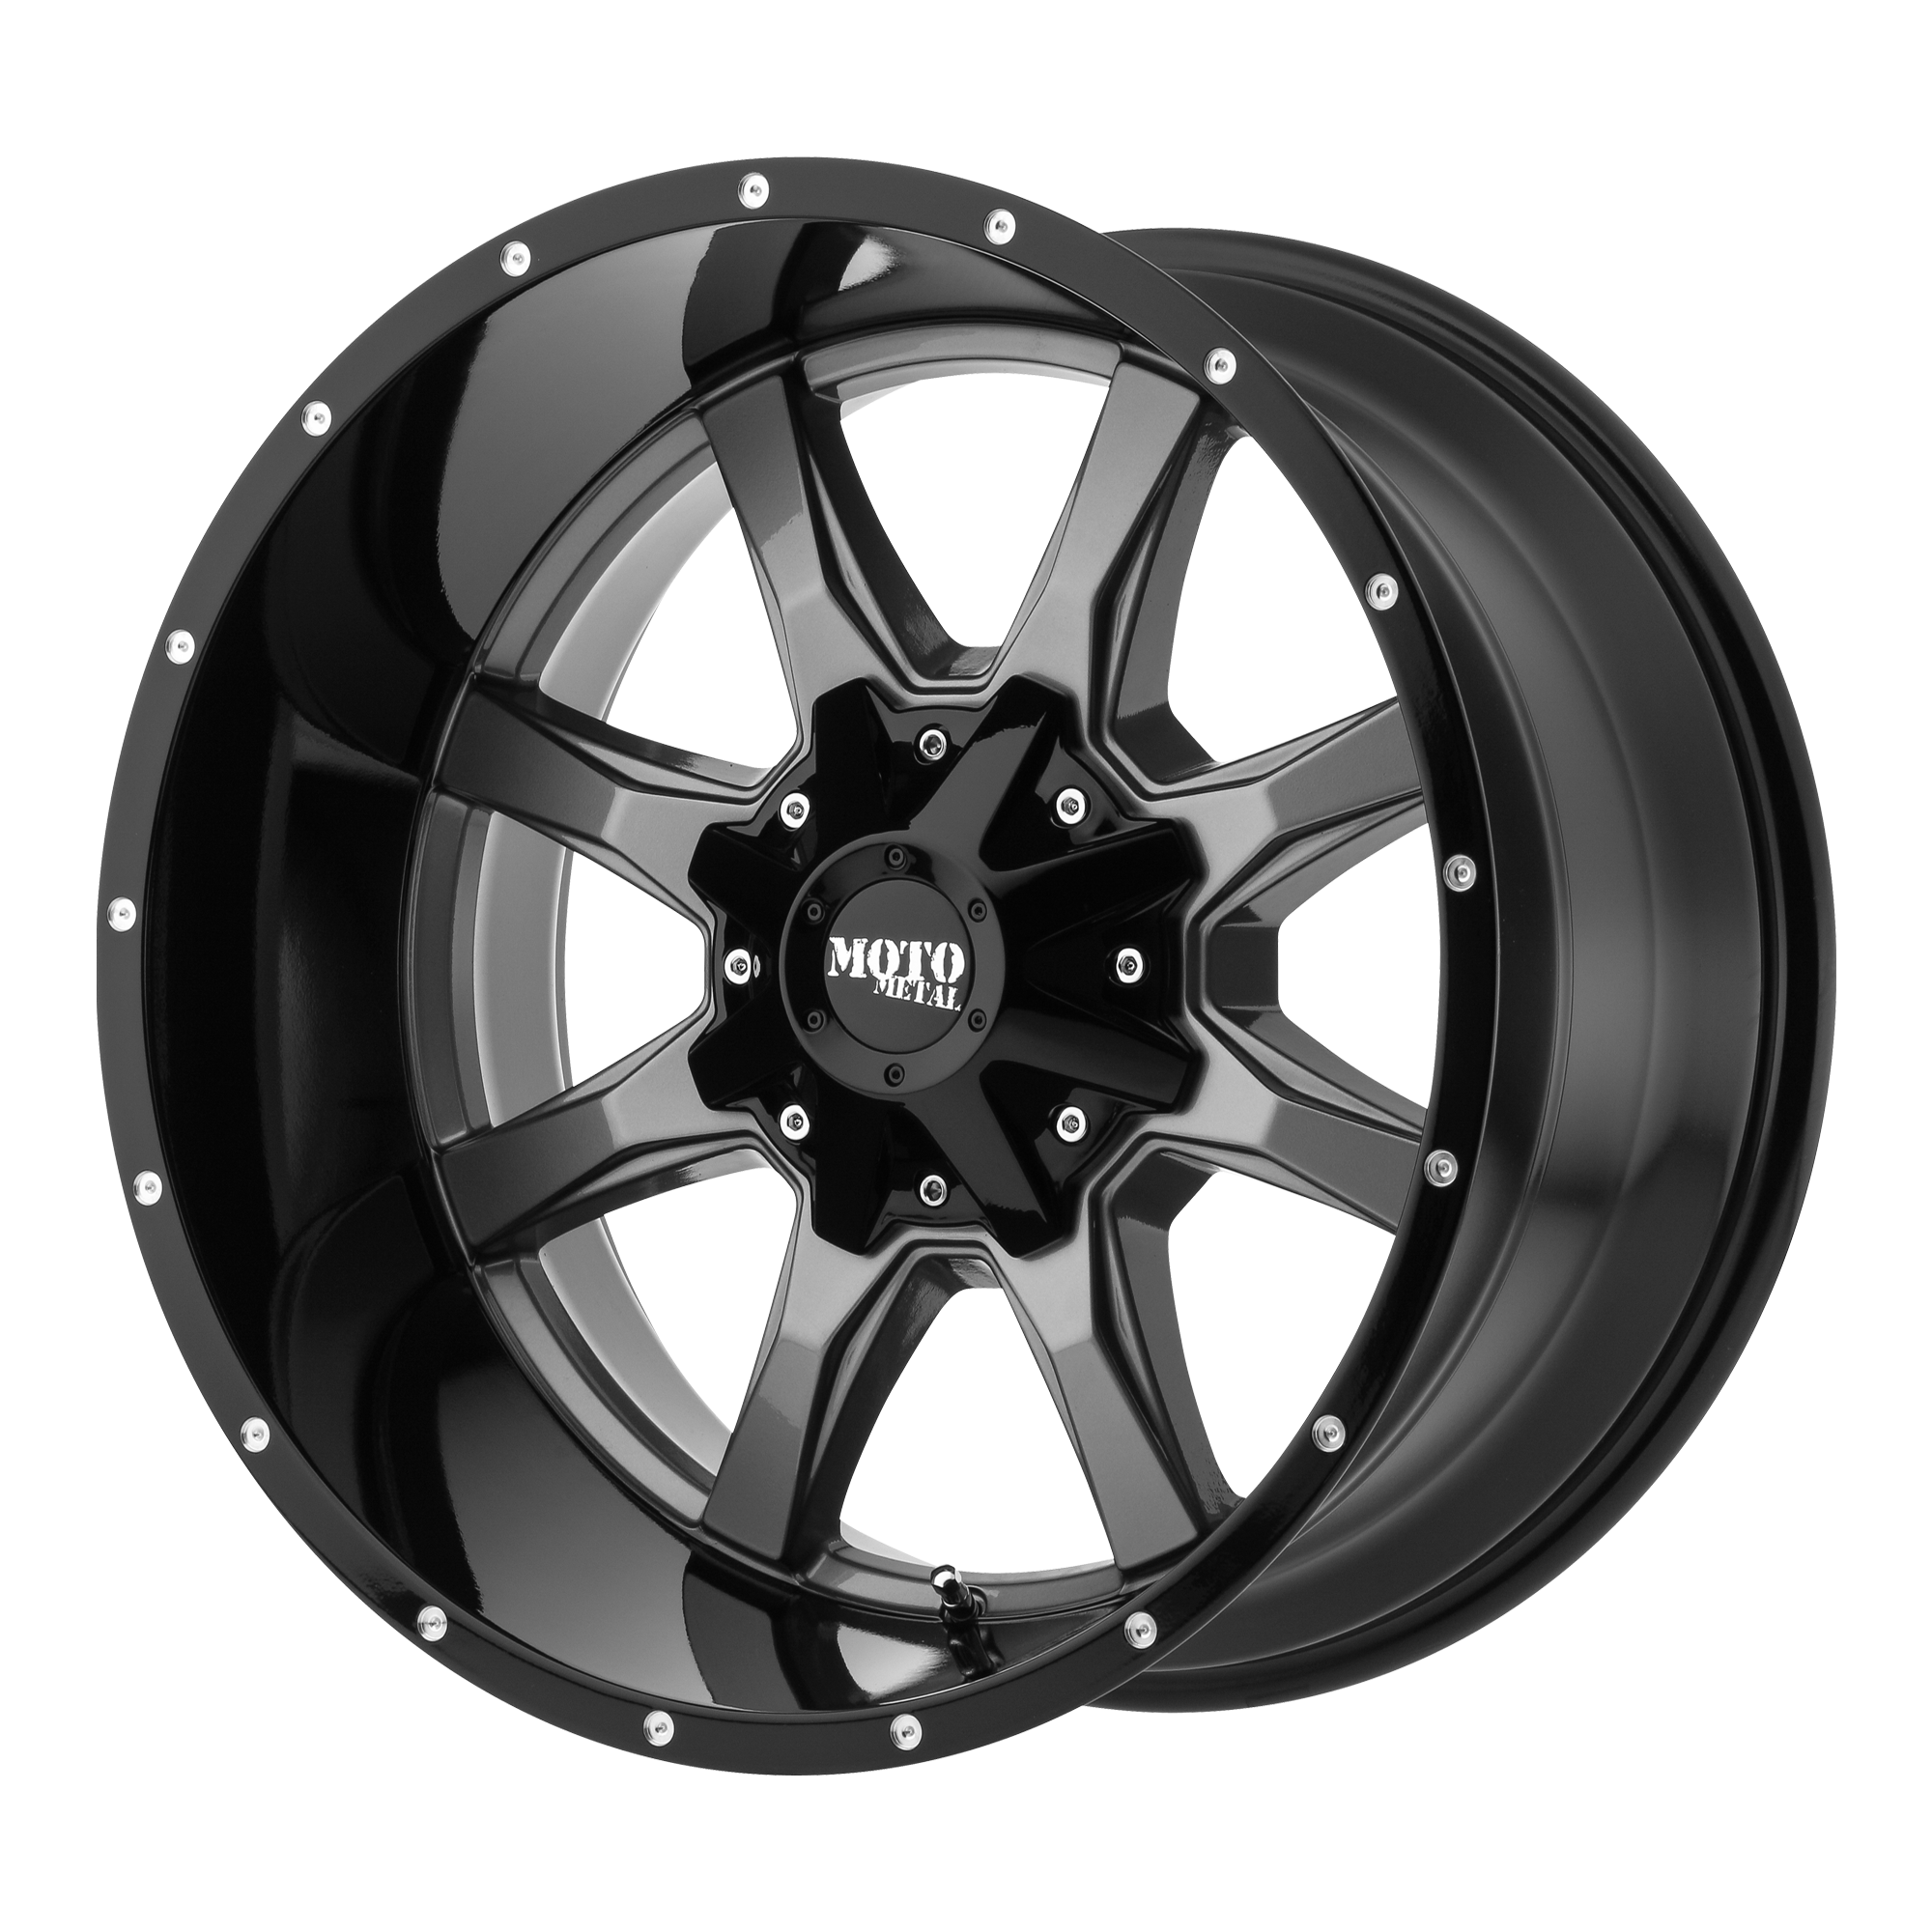 MOTO METAL MO970 hliníkové disky 10x18 5x139,7 ET-24 Gloss Gray Center Gloss Black Lip